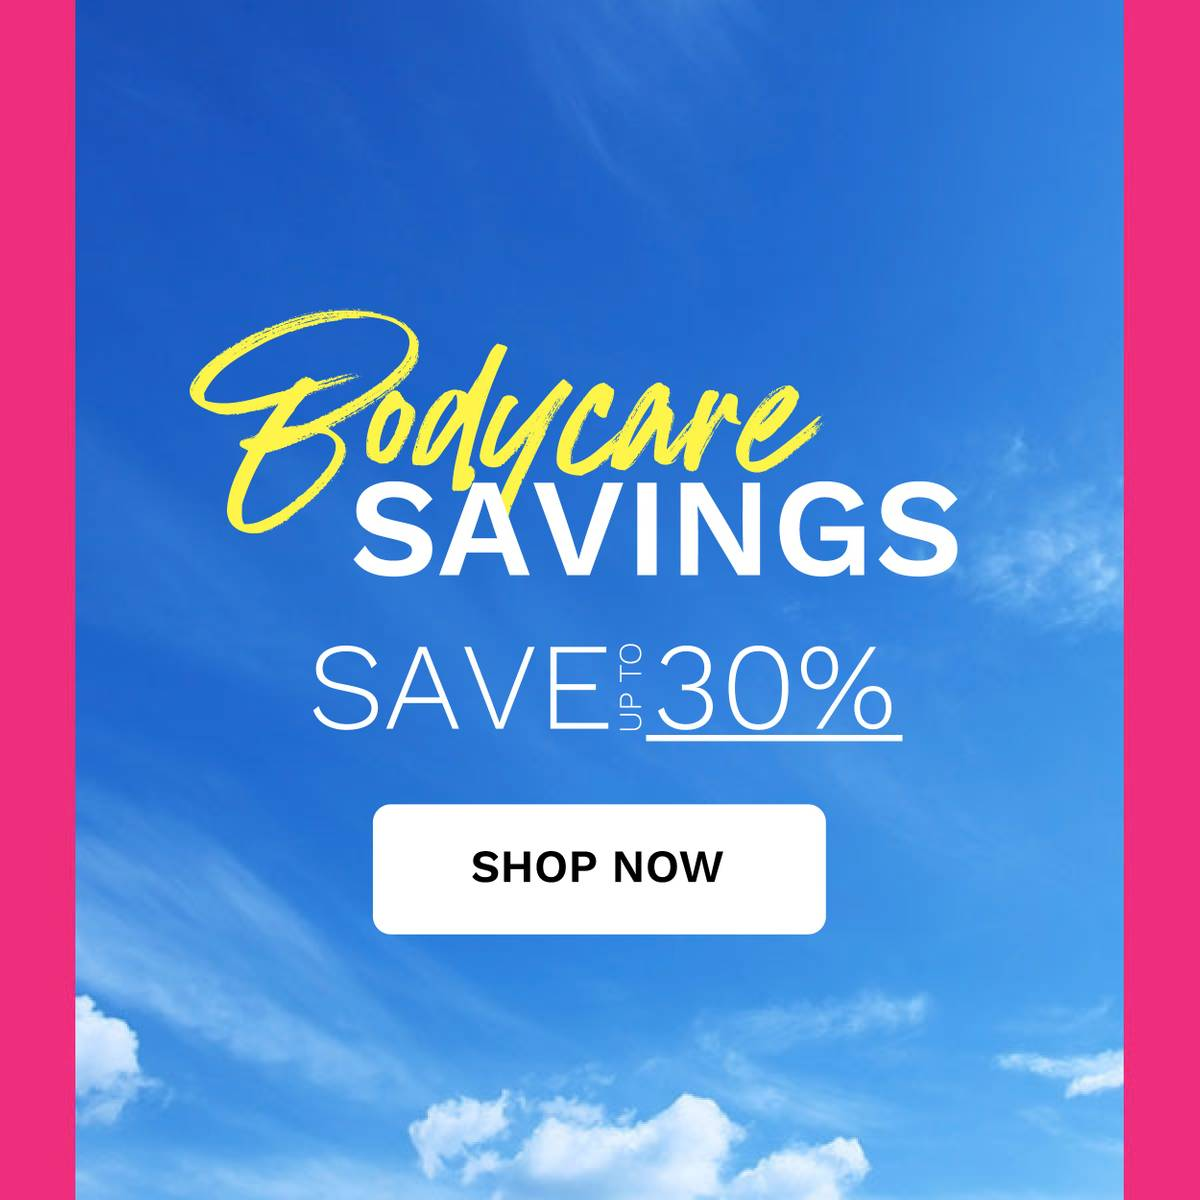 bodycare - save up to 30%